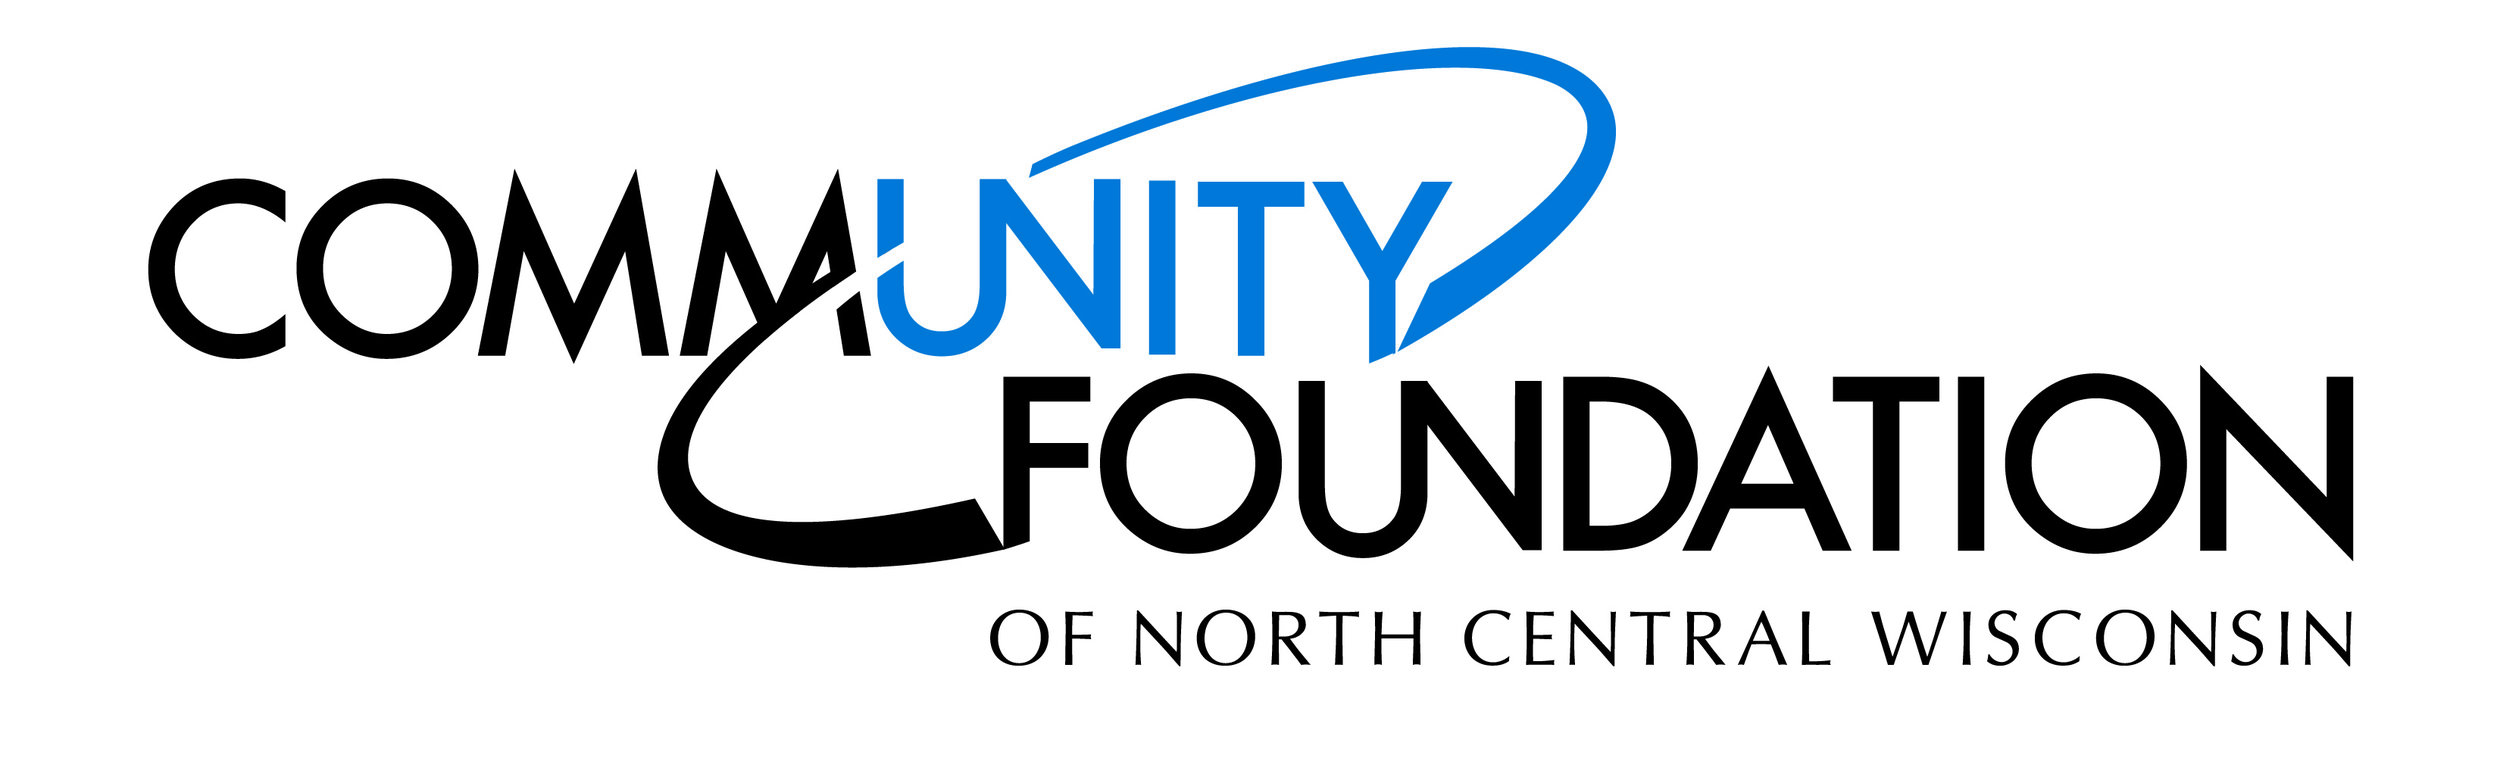 Community Foundation of North Central Wisconsin Logo